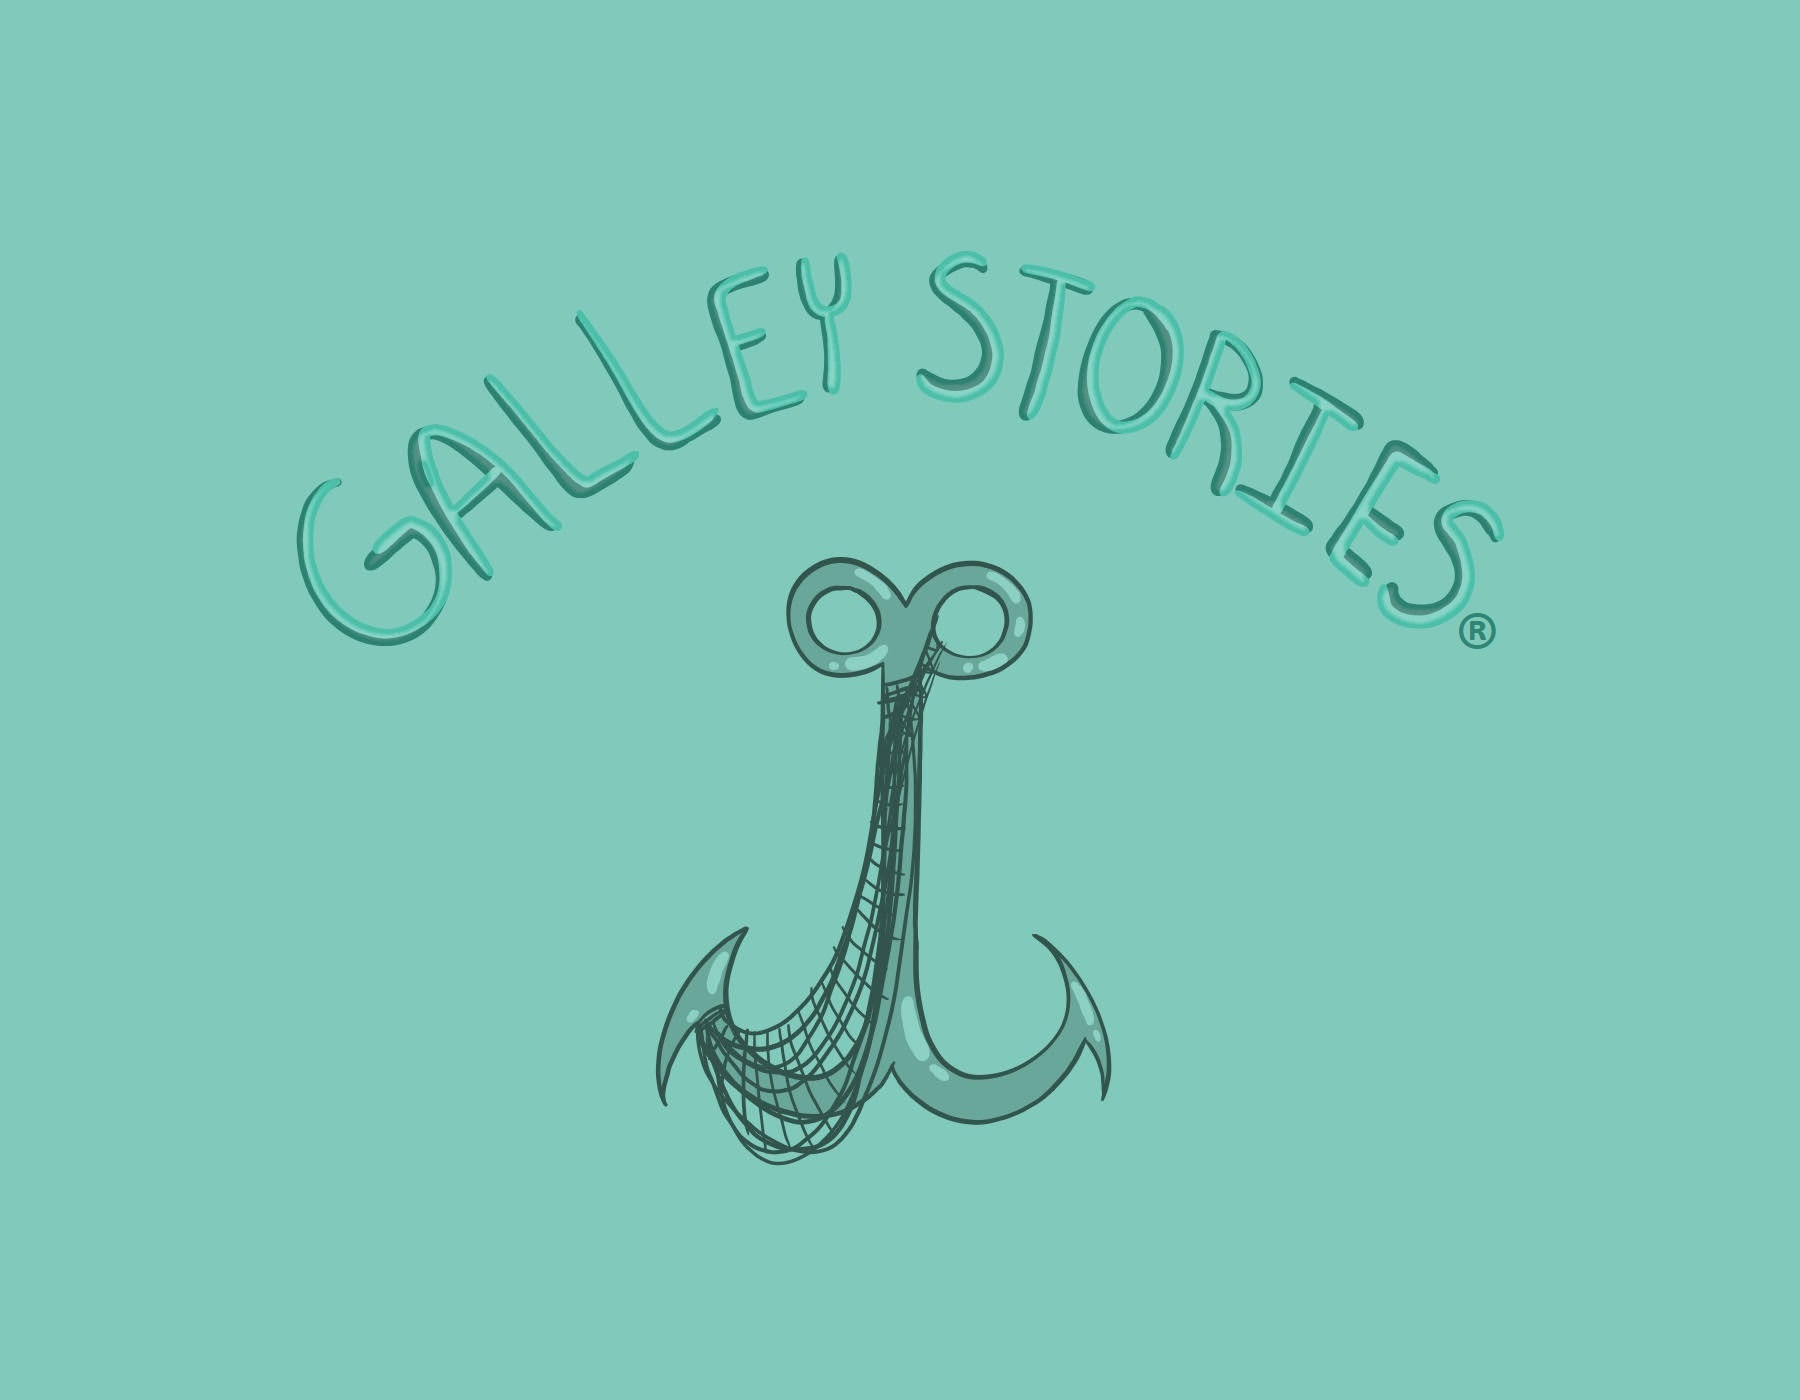 Galley Stories®